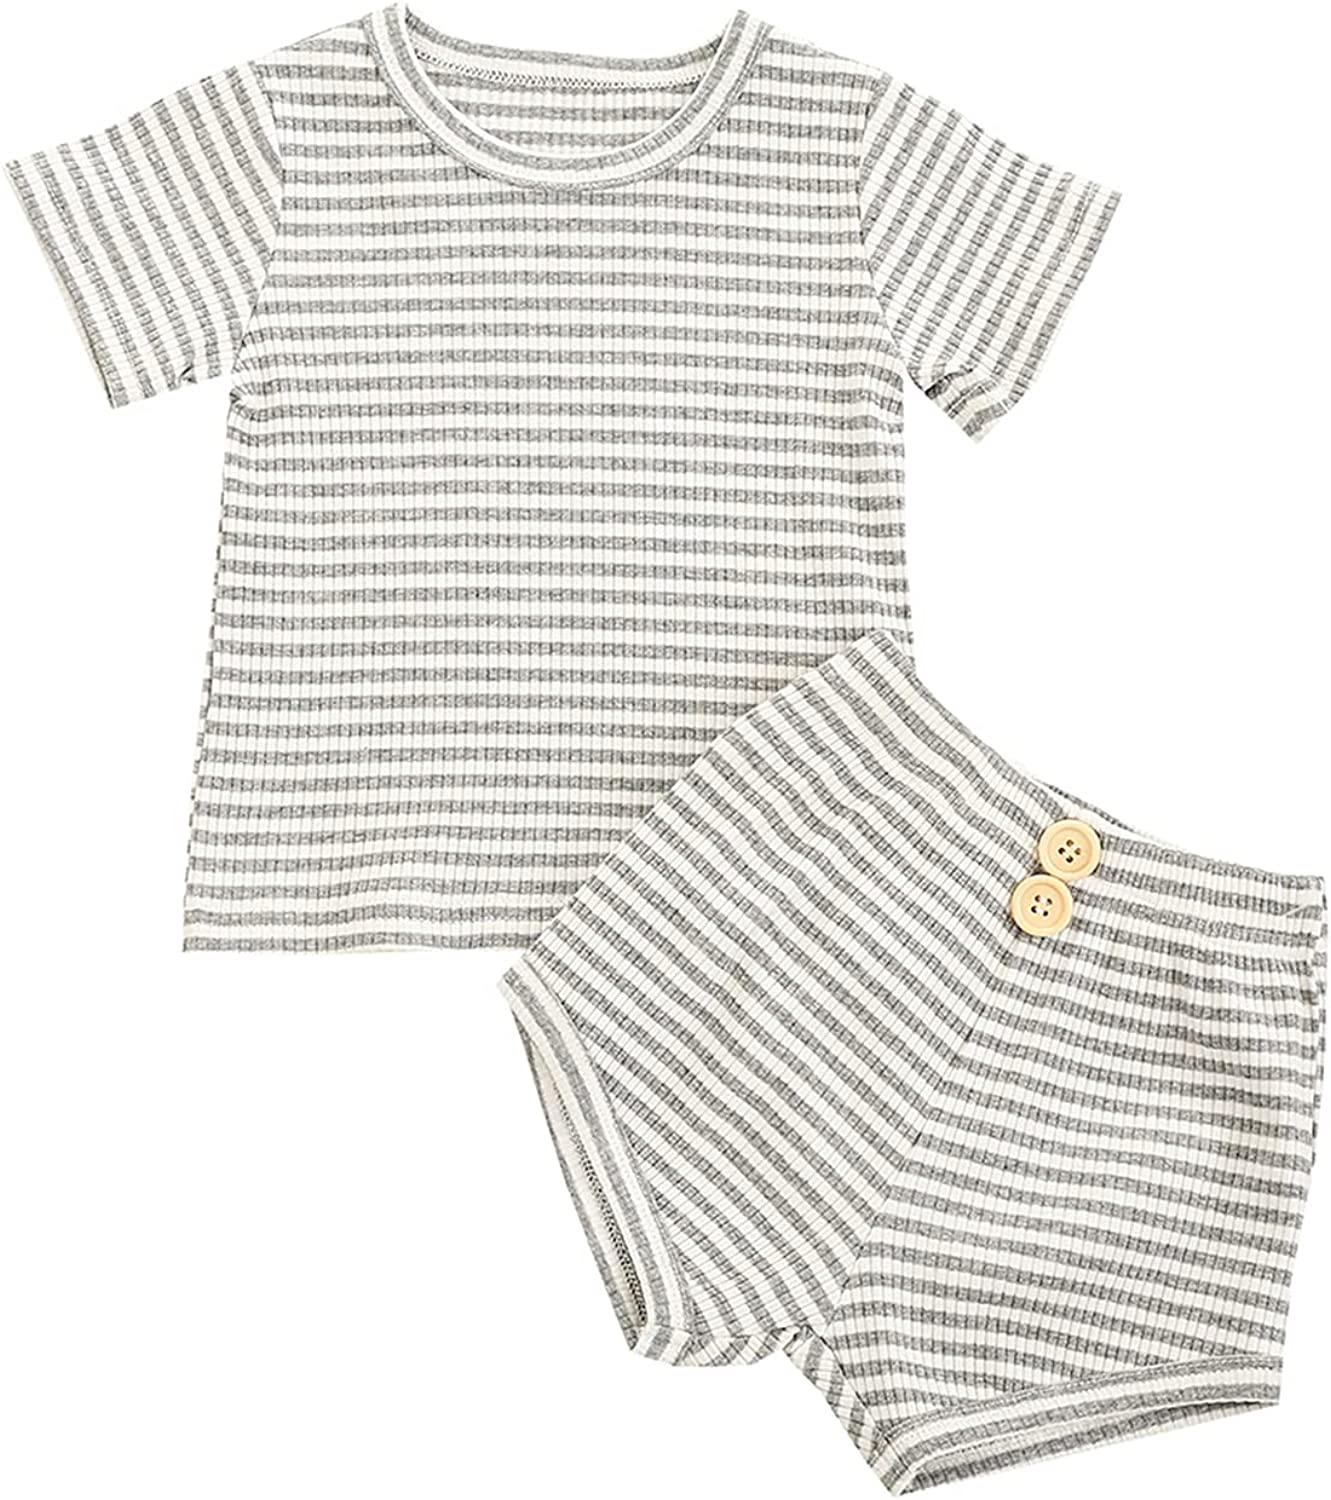 2 Pieces Kids Suit Set, Unisex Striped Round Collar Short Sleeve Tops+ High Waist Shorts for Summer (Gray, 5-6 Years)